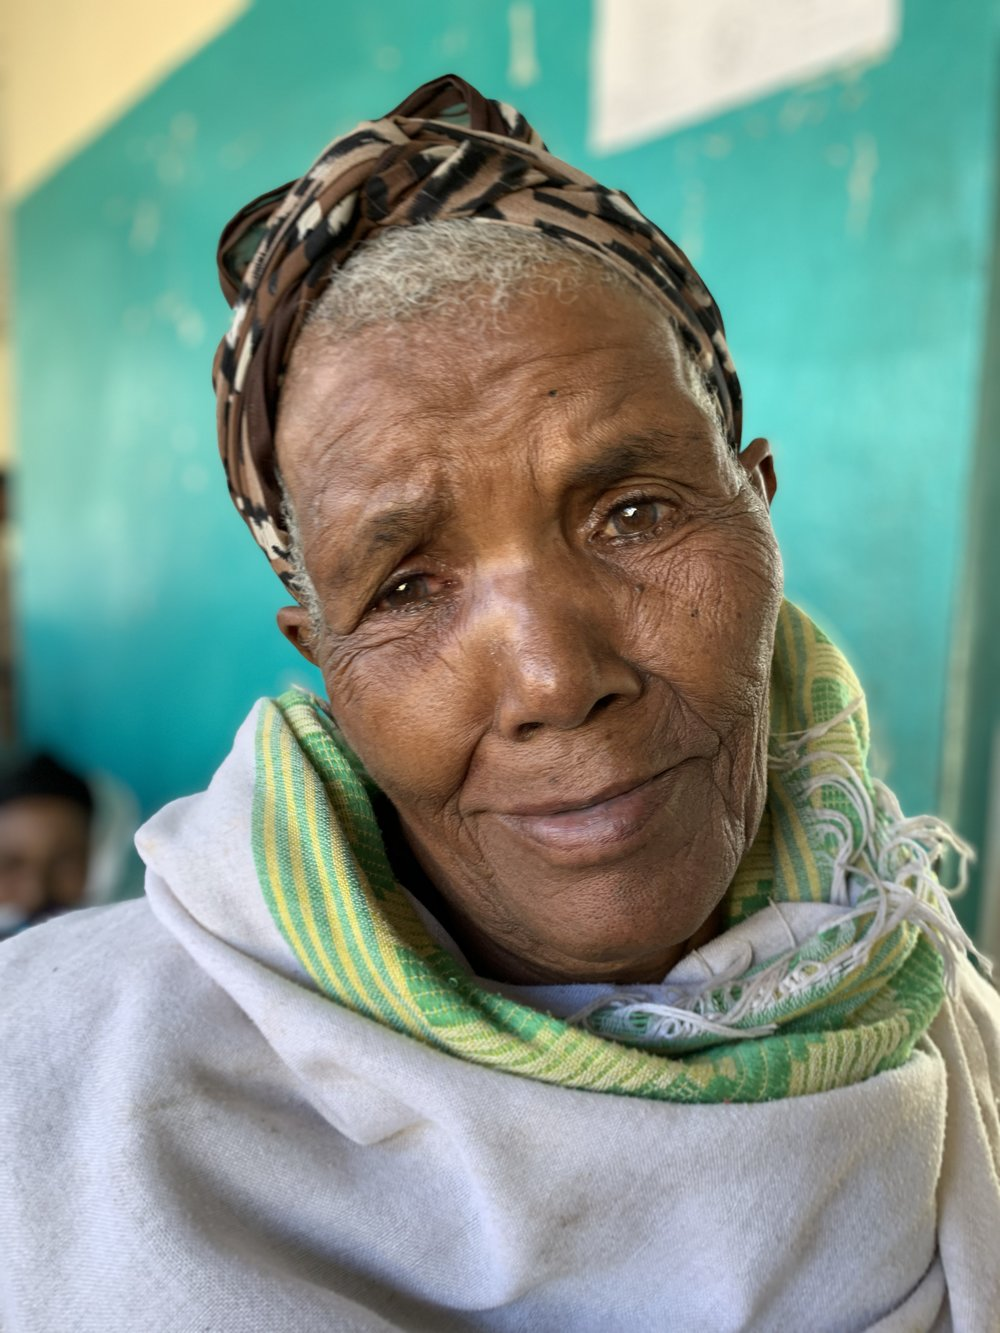 Photos from WEEMA's 5th Annual Cataract Campaign in Hossana, Ethiopia